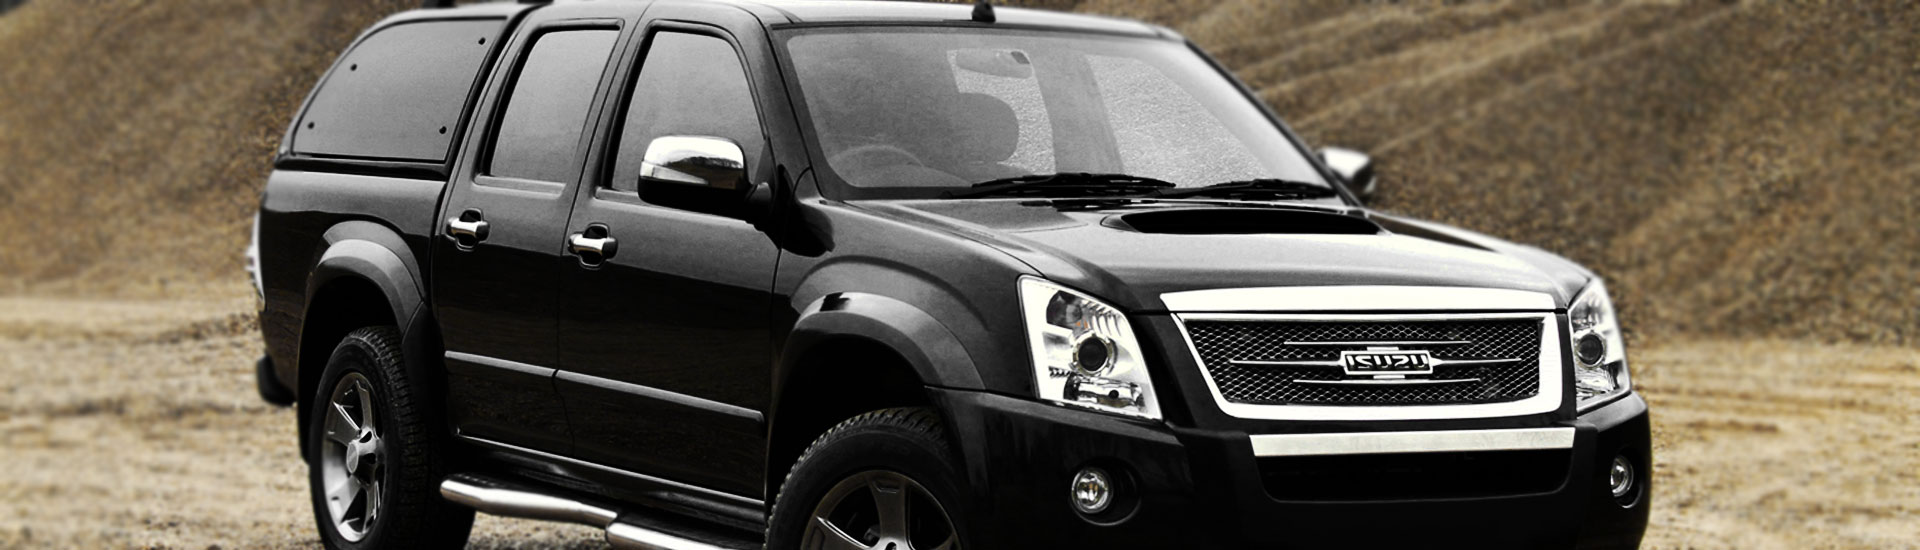 Isuzu Rodeo Window Tint